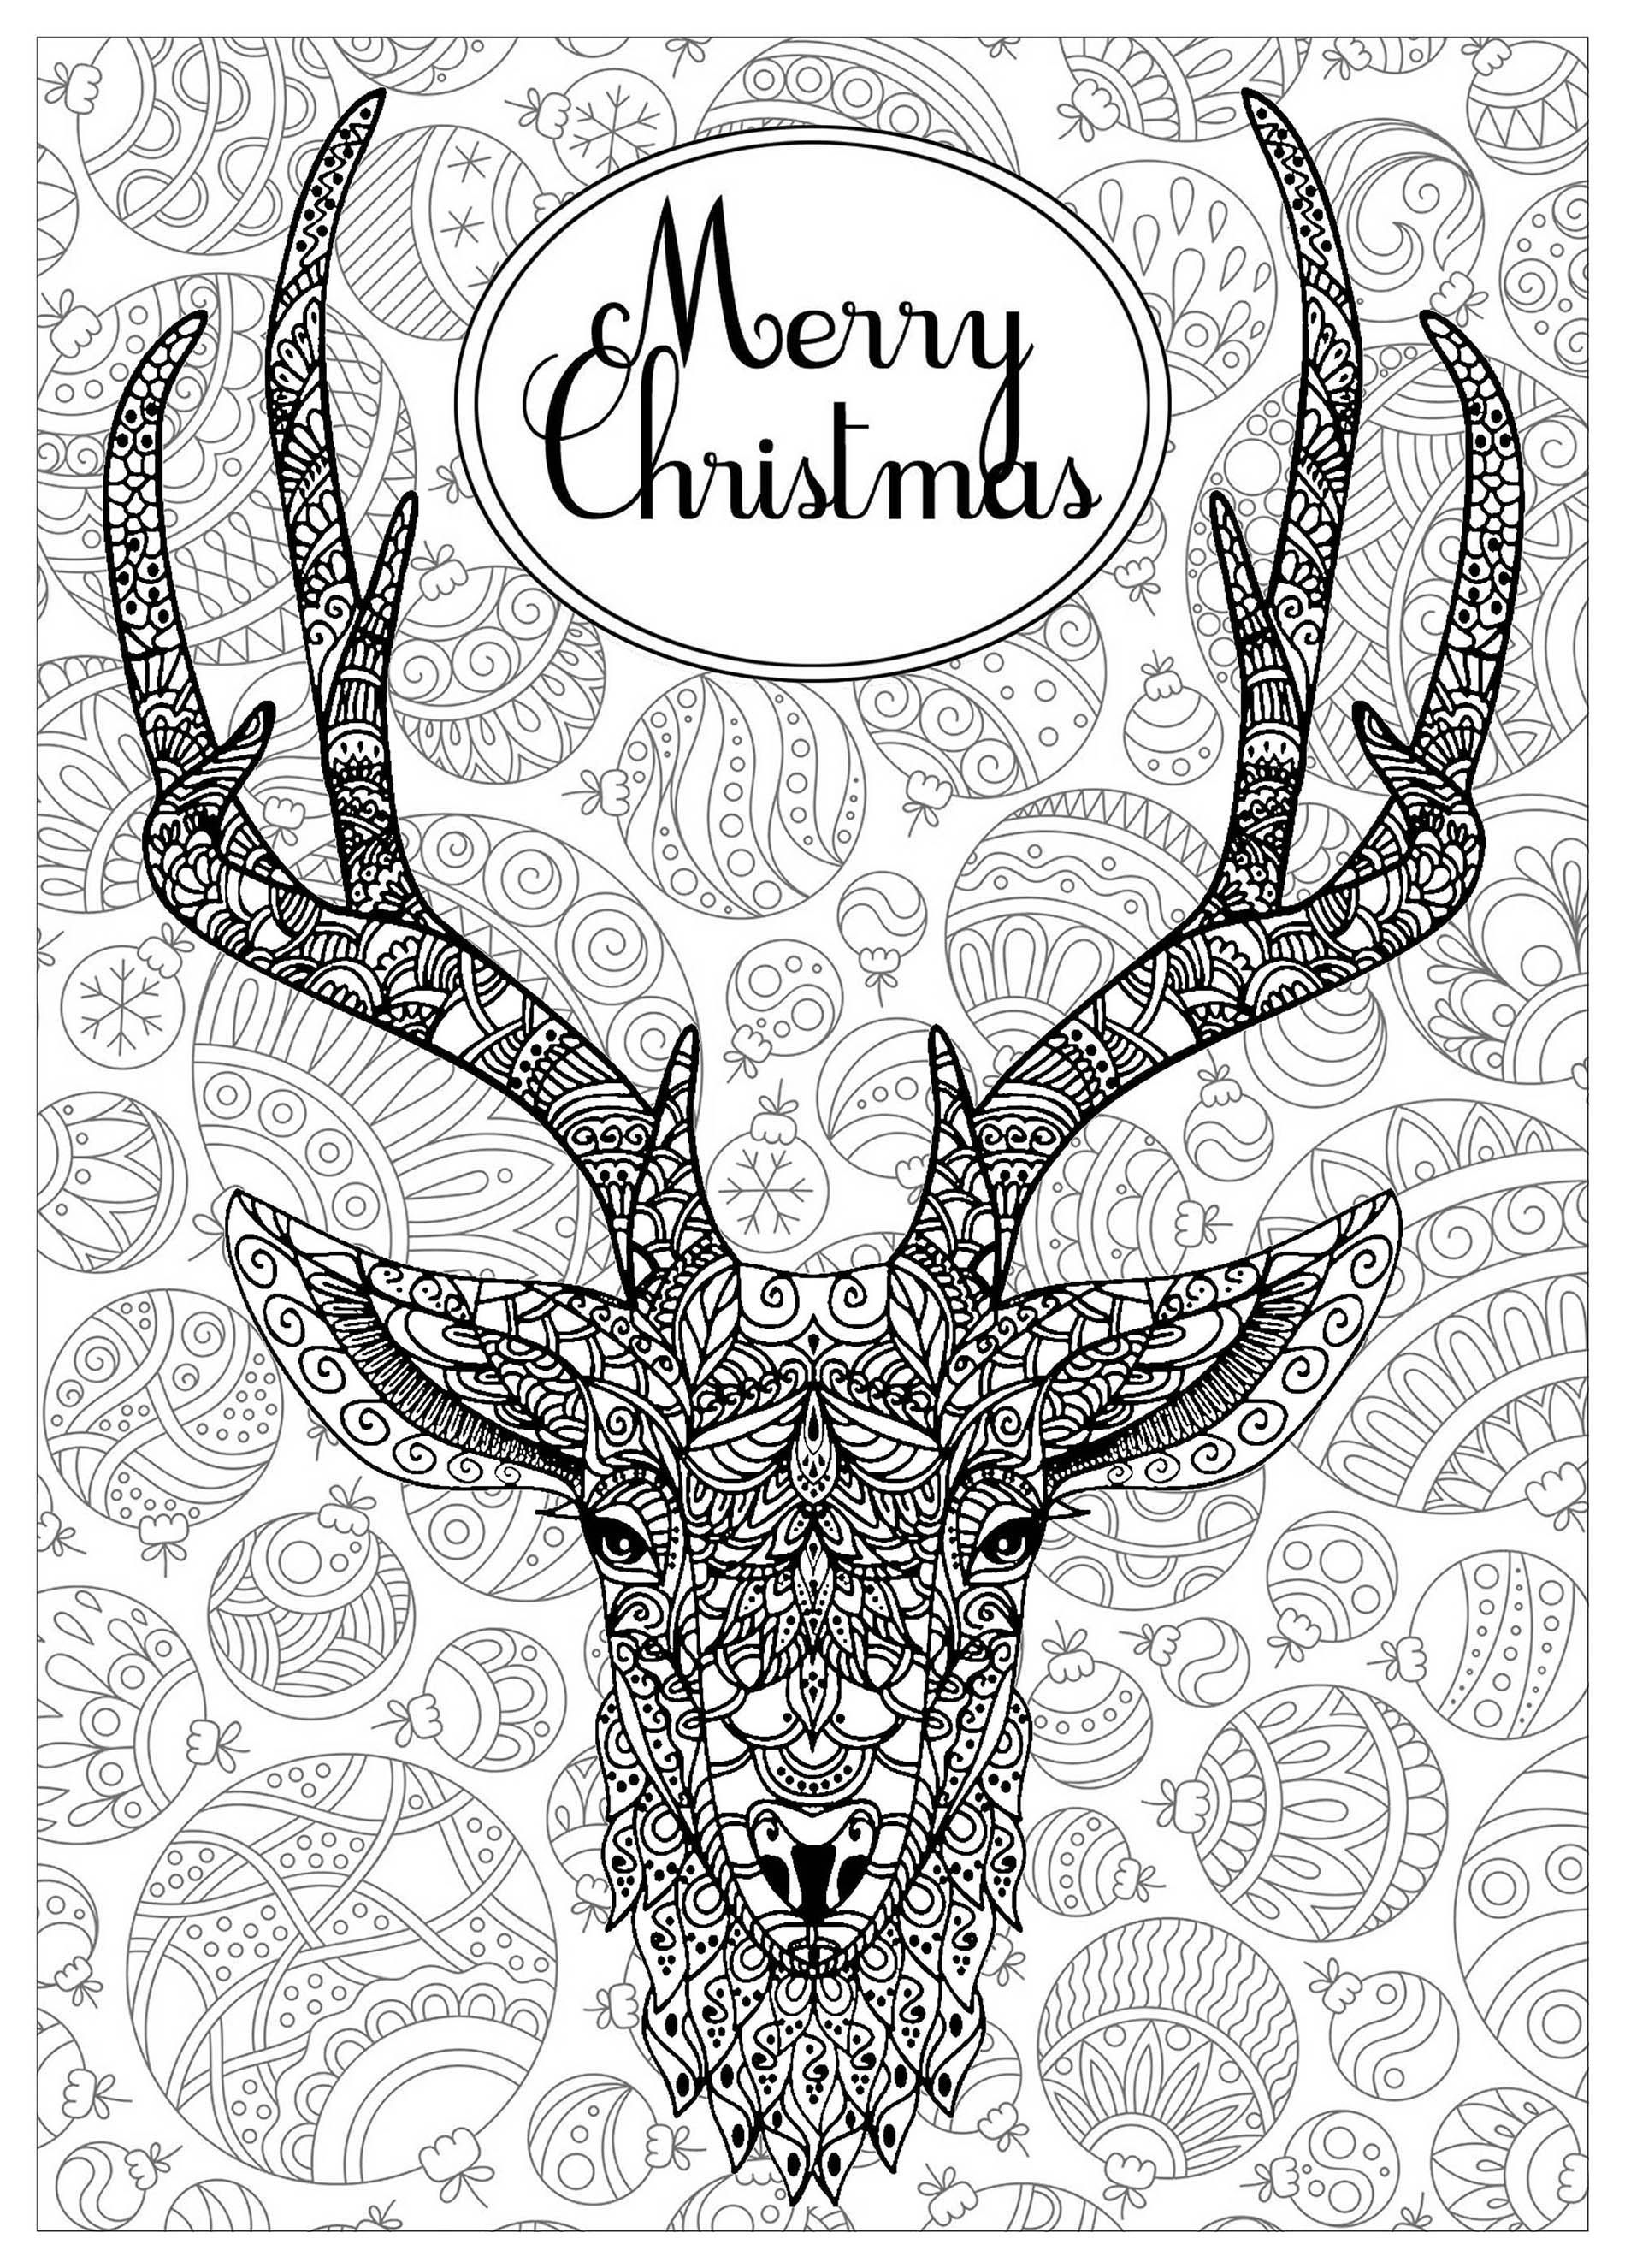 These Christmas Coloring Pages Are Dedicated To Adults Or Kids Very Talented An Merry Christmas Coloring Pages Christmas Coloring Pages Deer Coloring Pages